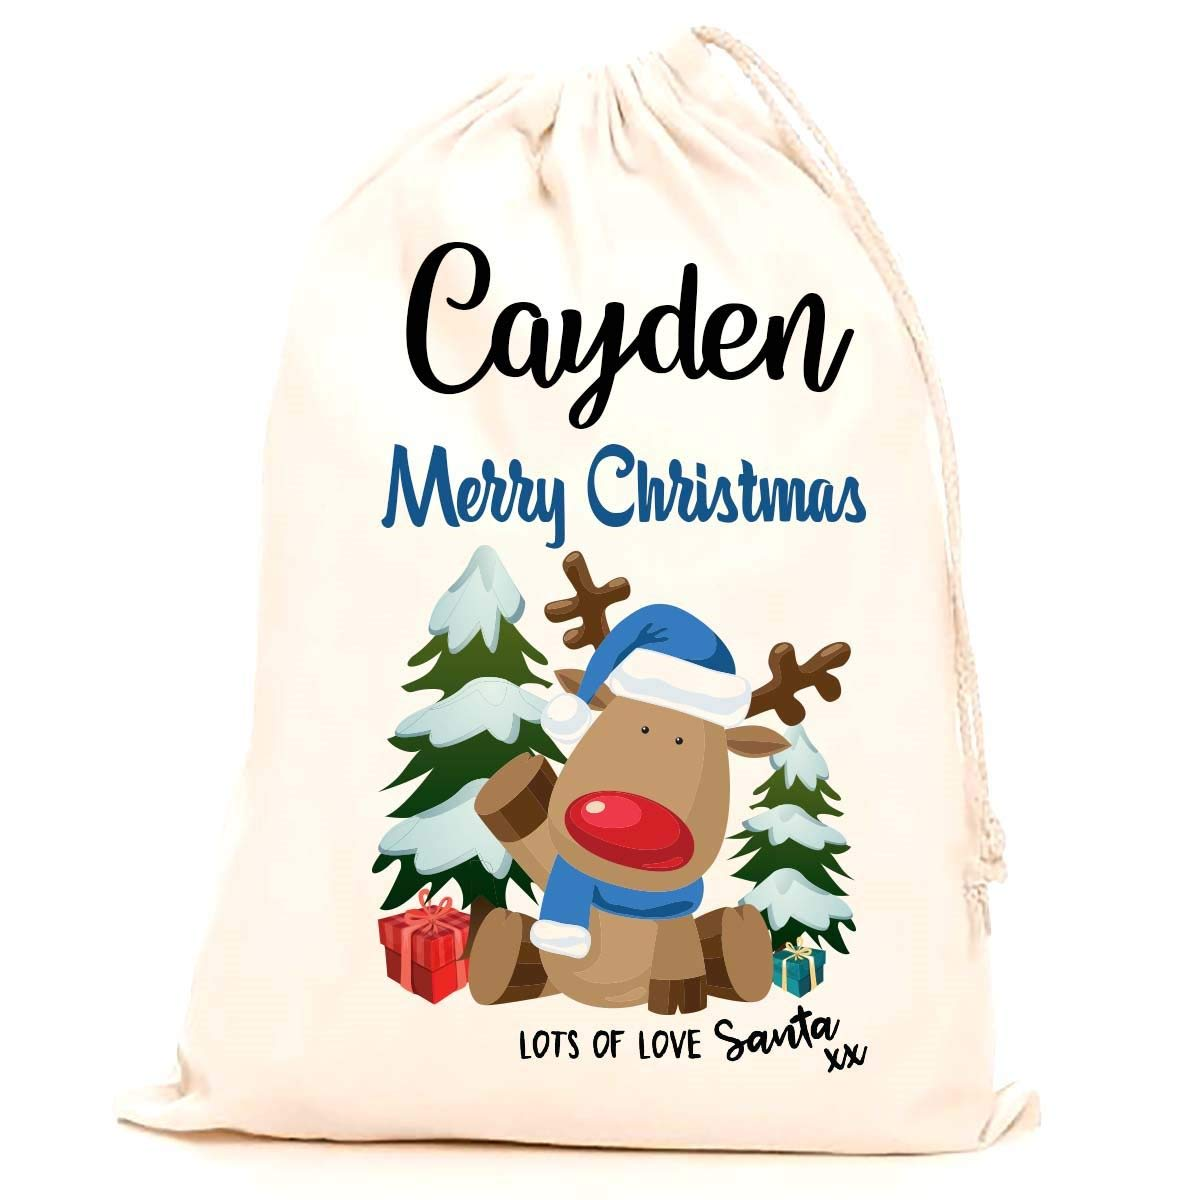 Treat Me Suite Cayden personalised name Christmas santa sack, stocking printed with a blue reindeer (75x50cm) 100% Cotton Large. Children, Kids, making it the perfect keepsake xmas gift/present. CS Printing Limited